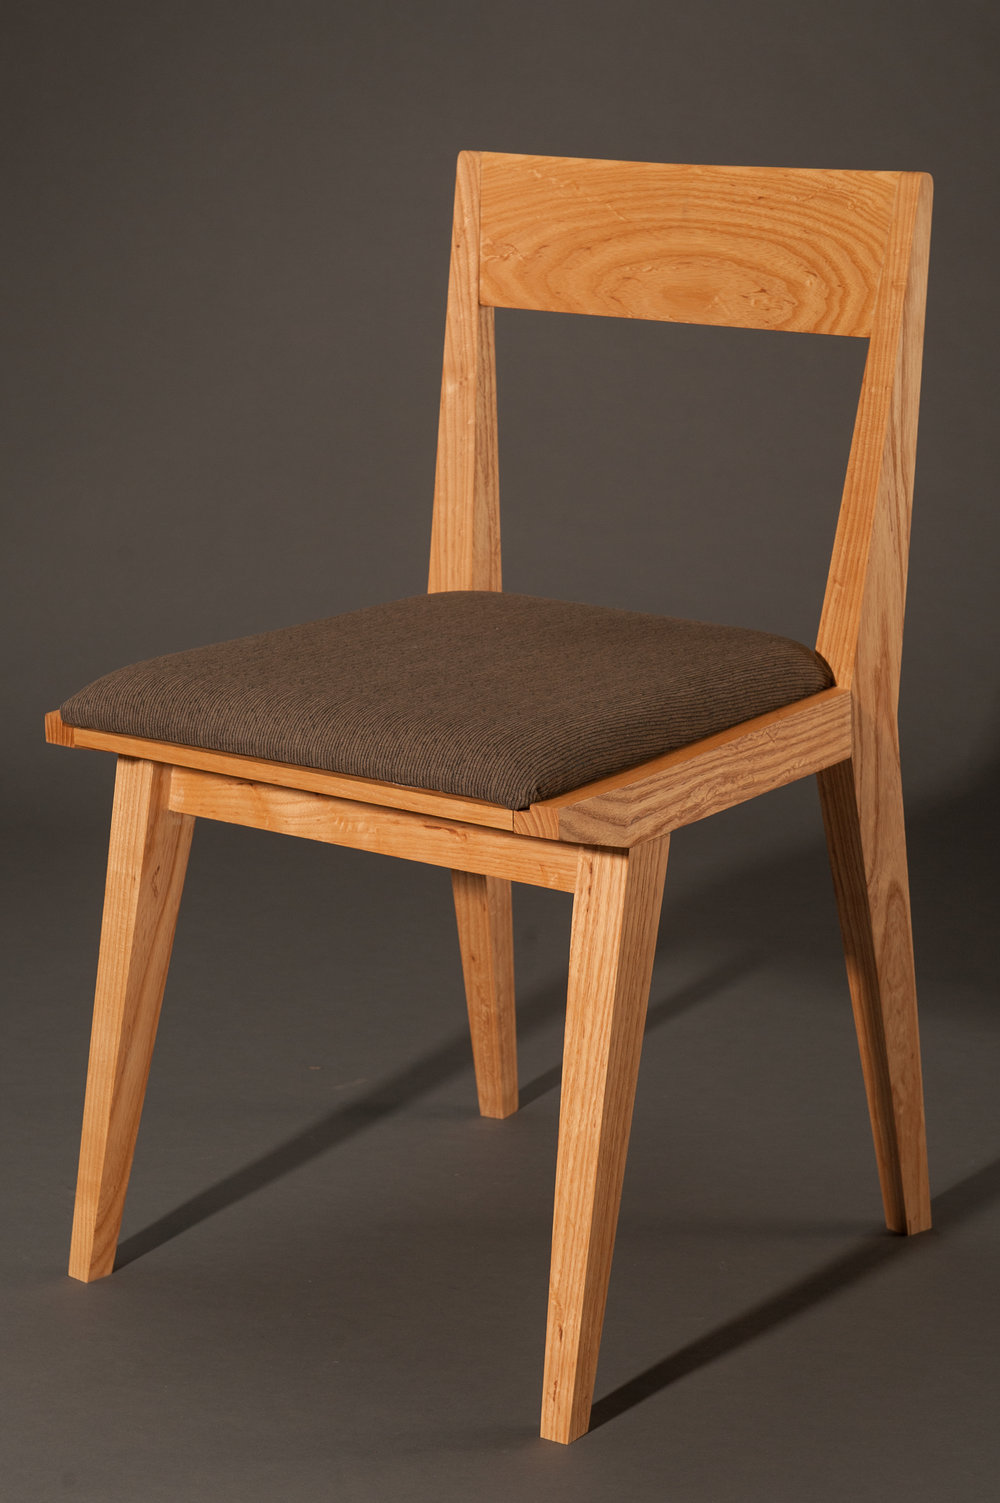 Dylu0027s First Chair. Tage Frid Reproduction Ash 2011